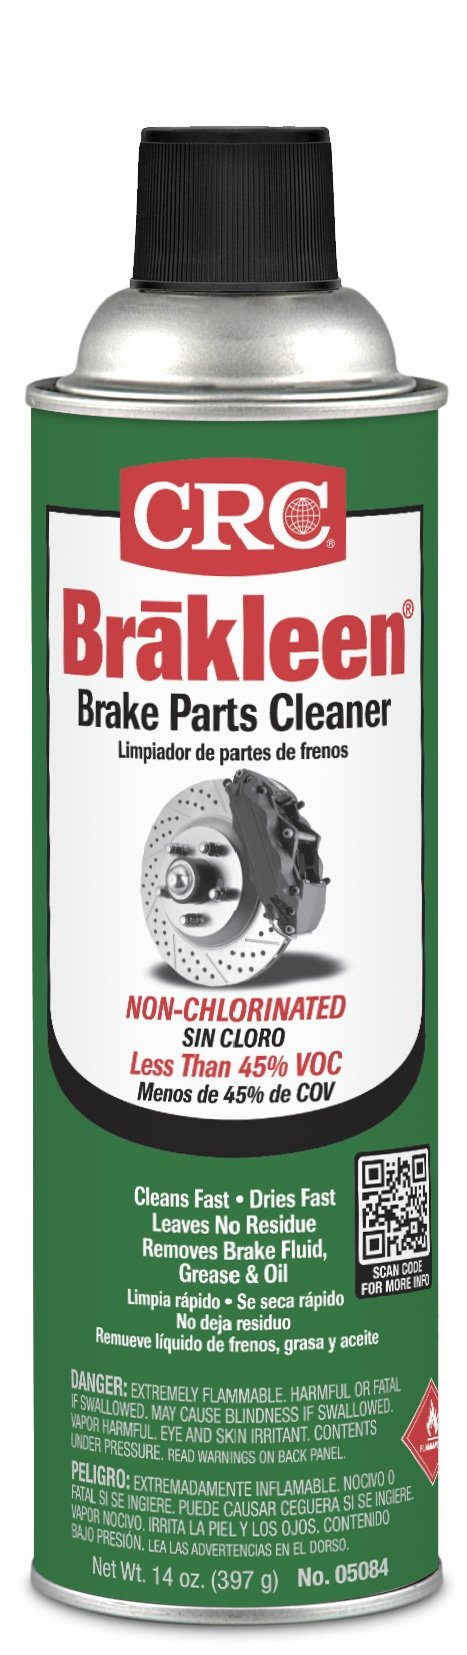 Brakleen® Non-Chlorinated Brake Parts Cleaners - 20 oz aerosol brakleen brake parts cleaner [Set of 12]